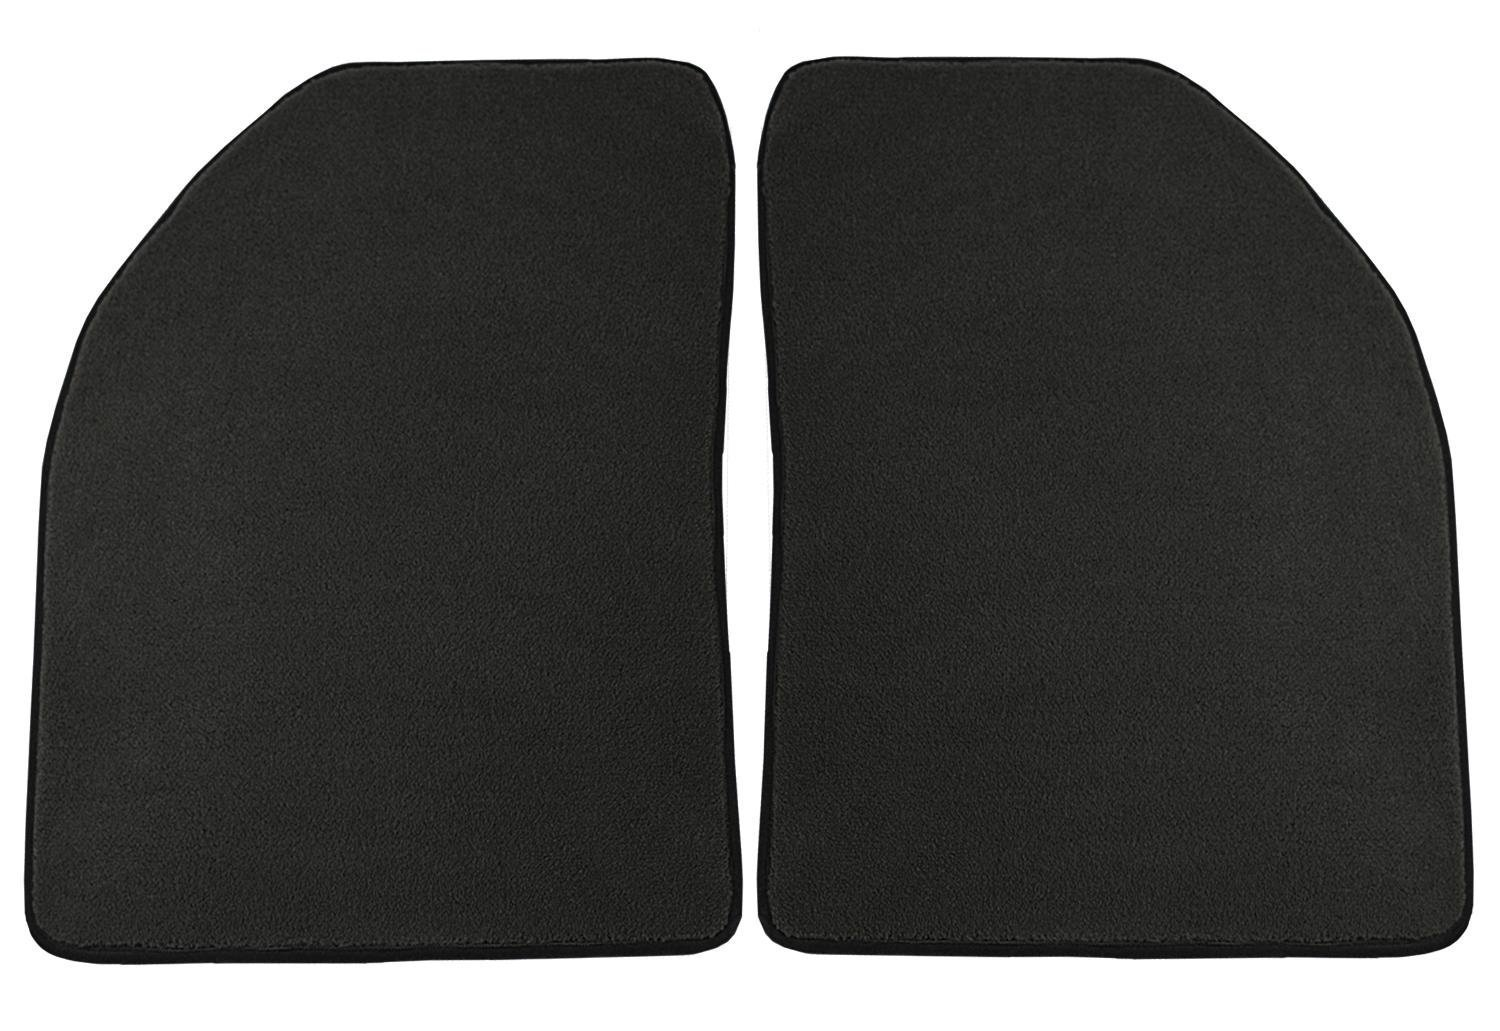 2nd /& 3rd Row 2010 2011 2015 2012 2009 2016 GMC Acadia Pink Driver 2014 GGBAILEY D3583A-LSA-PNK Custom Fit Car Mats for 2007 2013 2008 Passenger 4 Piece Floor